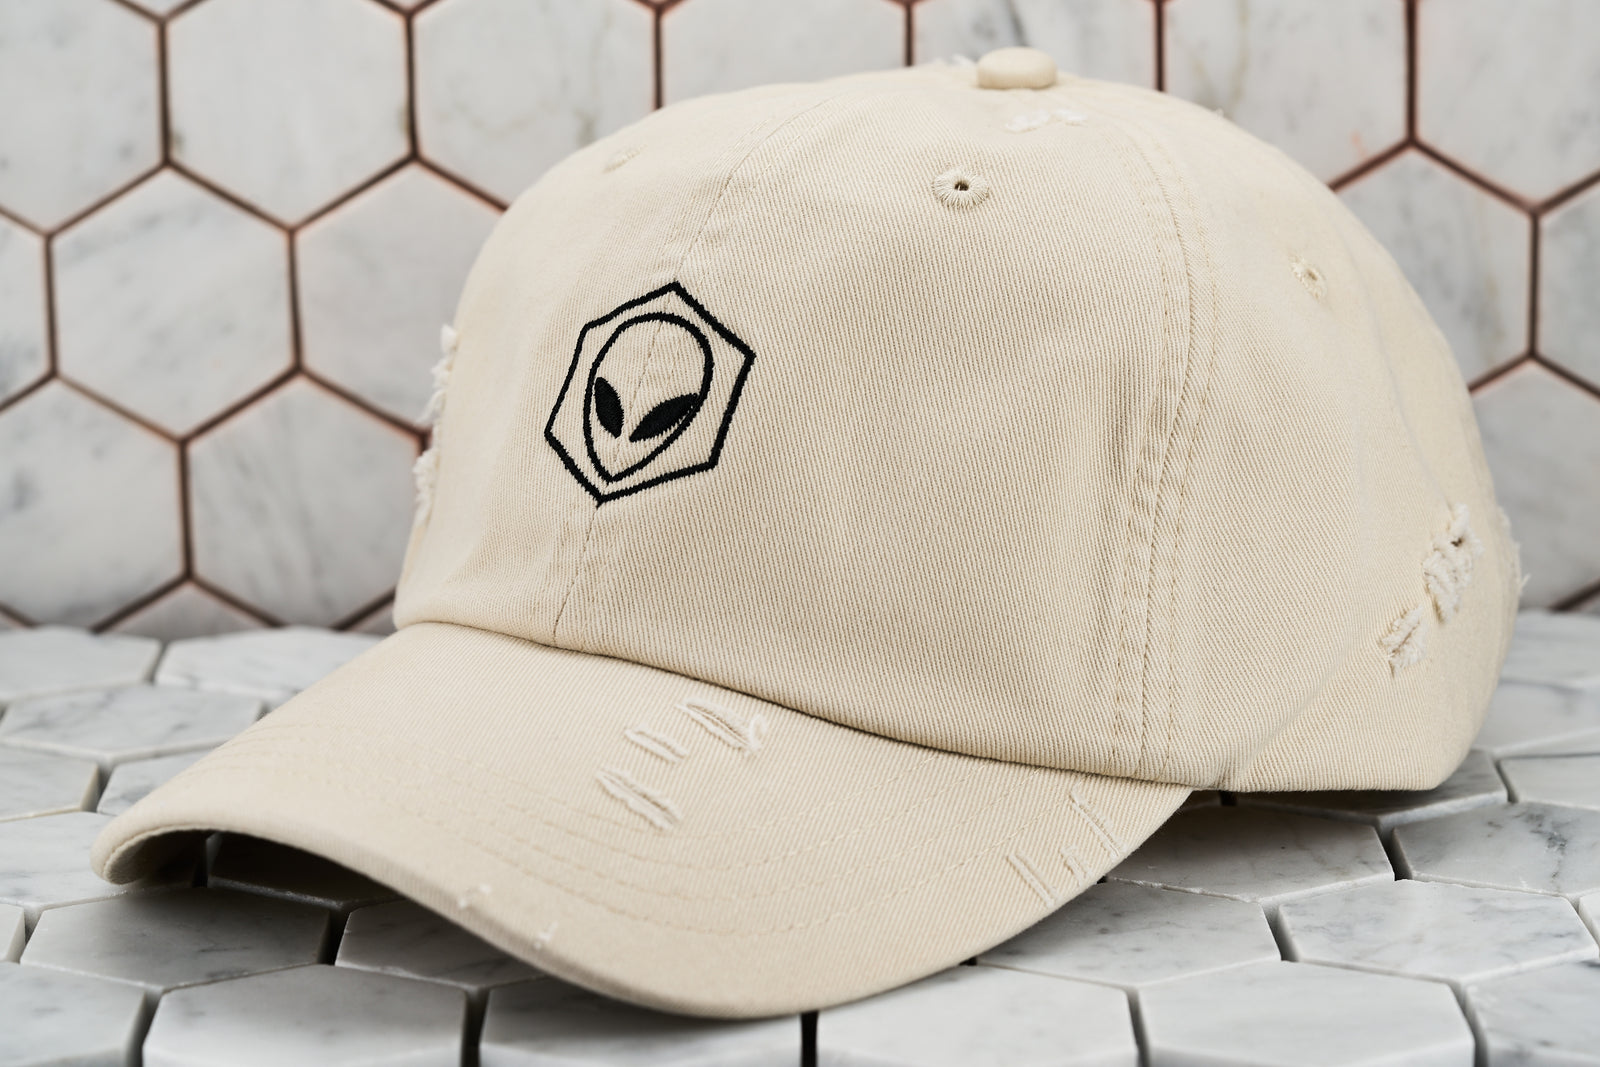 The front view of the ripped up stone khaki martian cap, which features a black embroidered hexagon encompassing an alien.